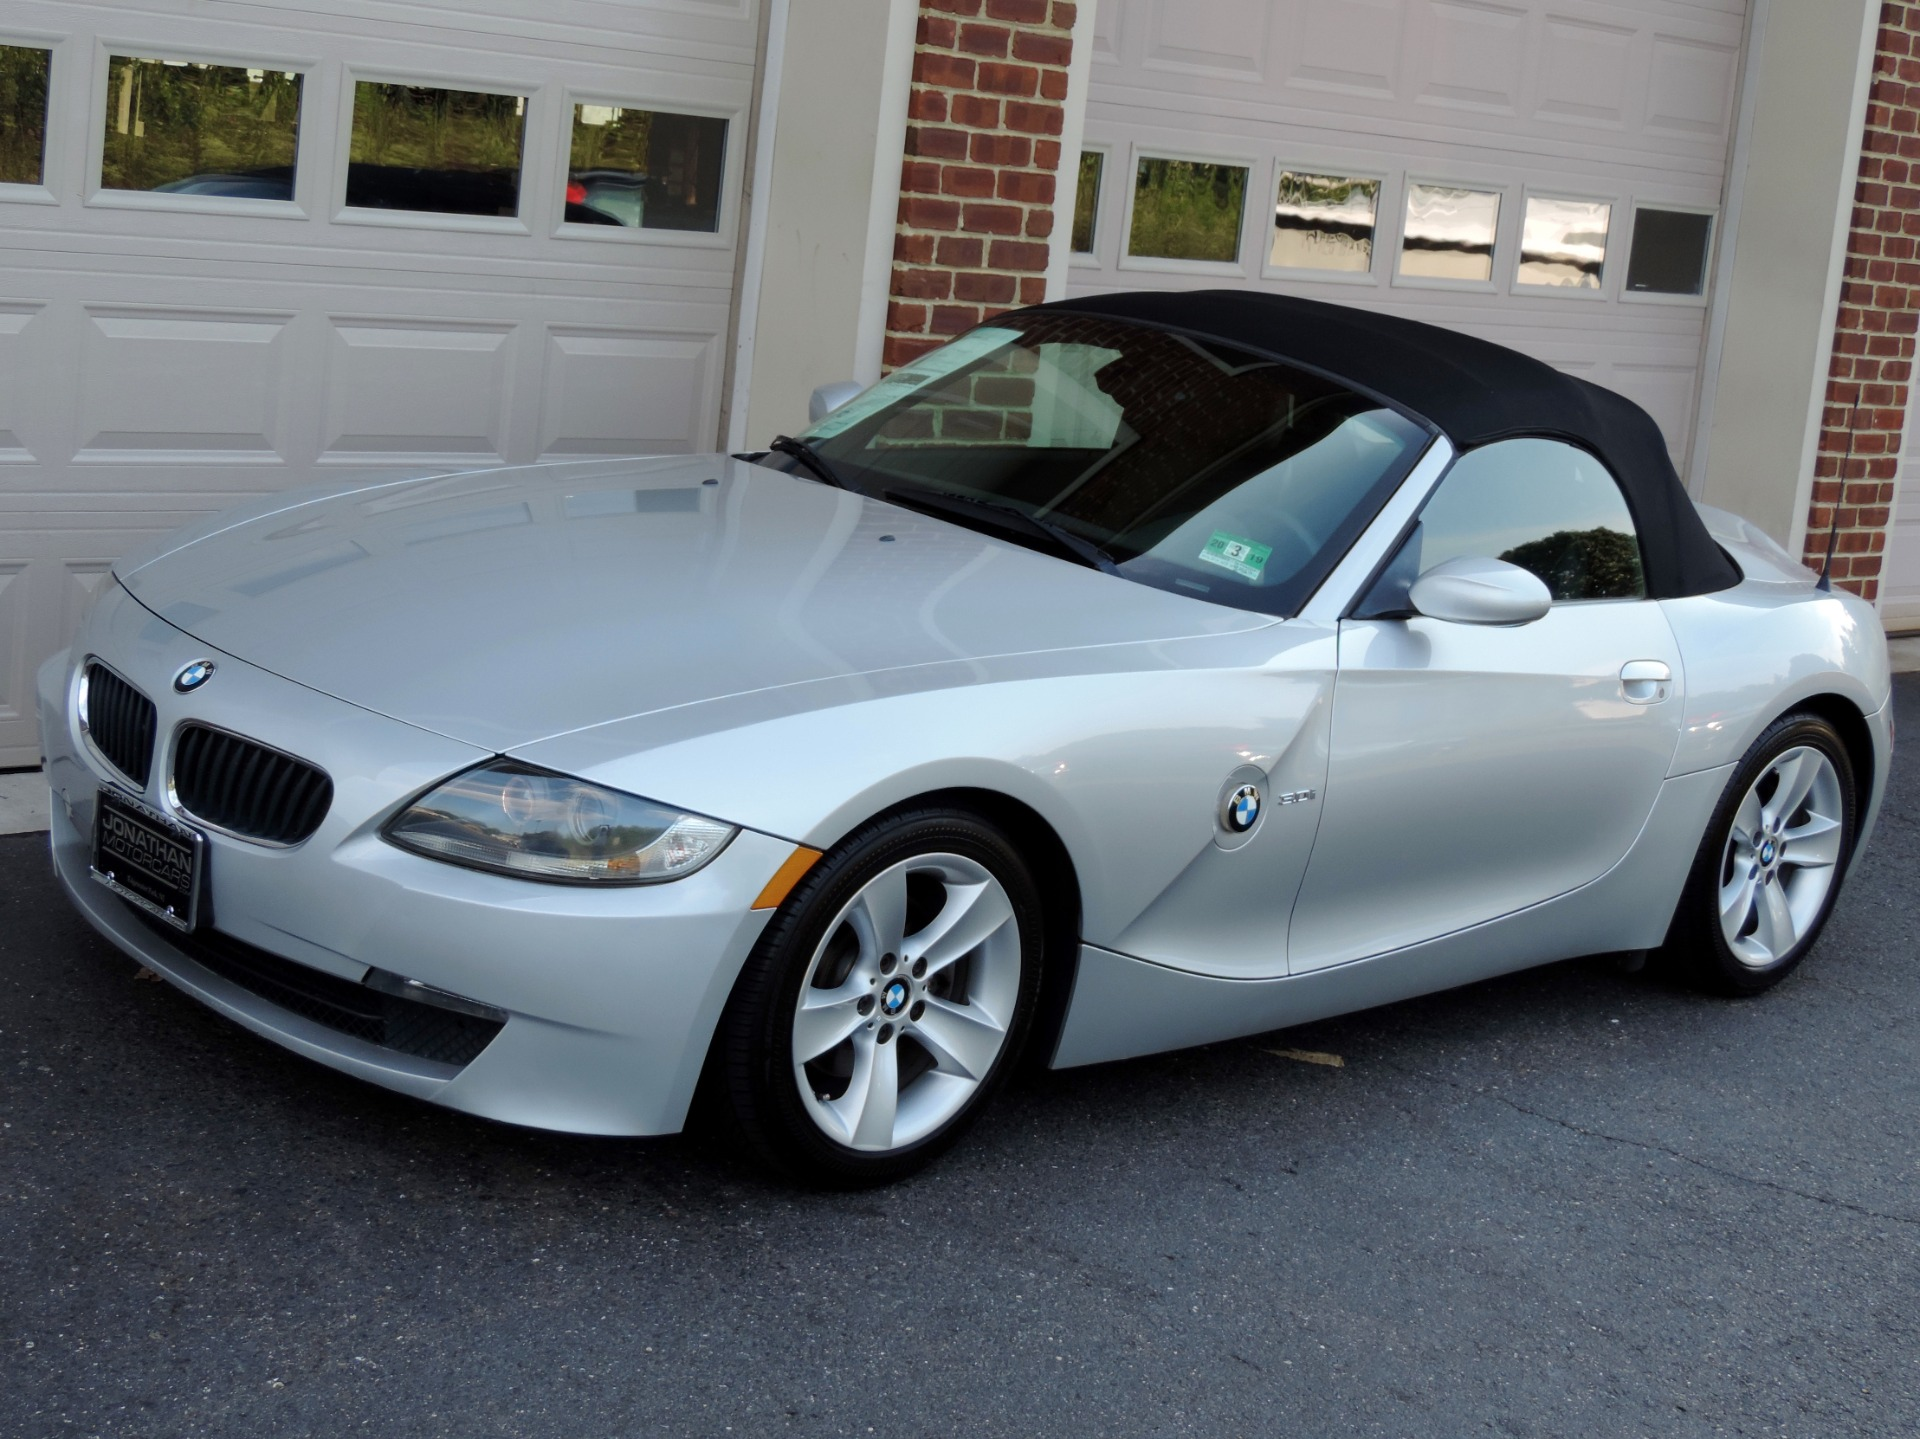 2006 Bmw Z4 Roadster 3 0i Stock W69654 For Sale Near Edgewater Park Nj Nj Bmw Dealer